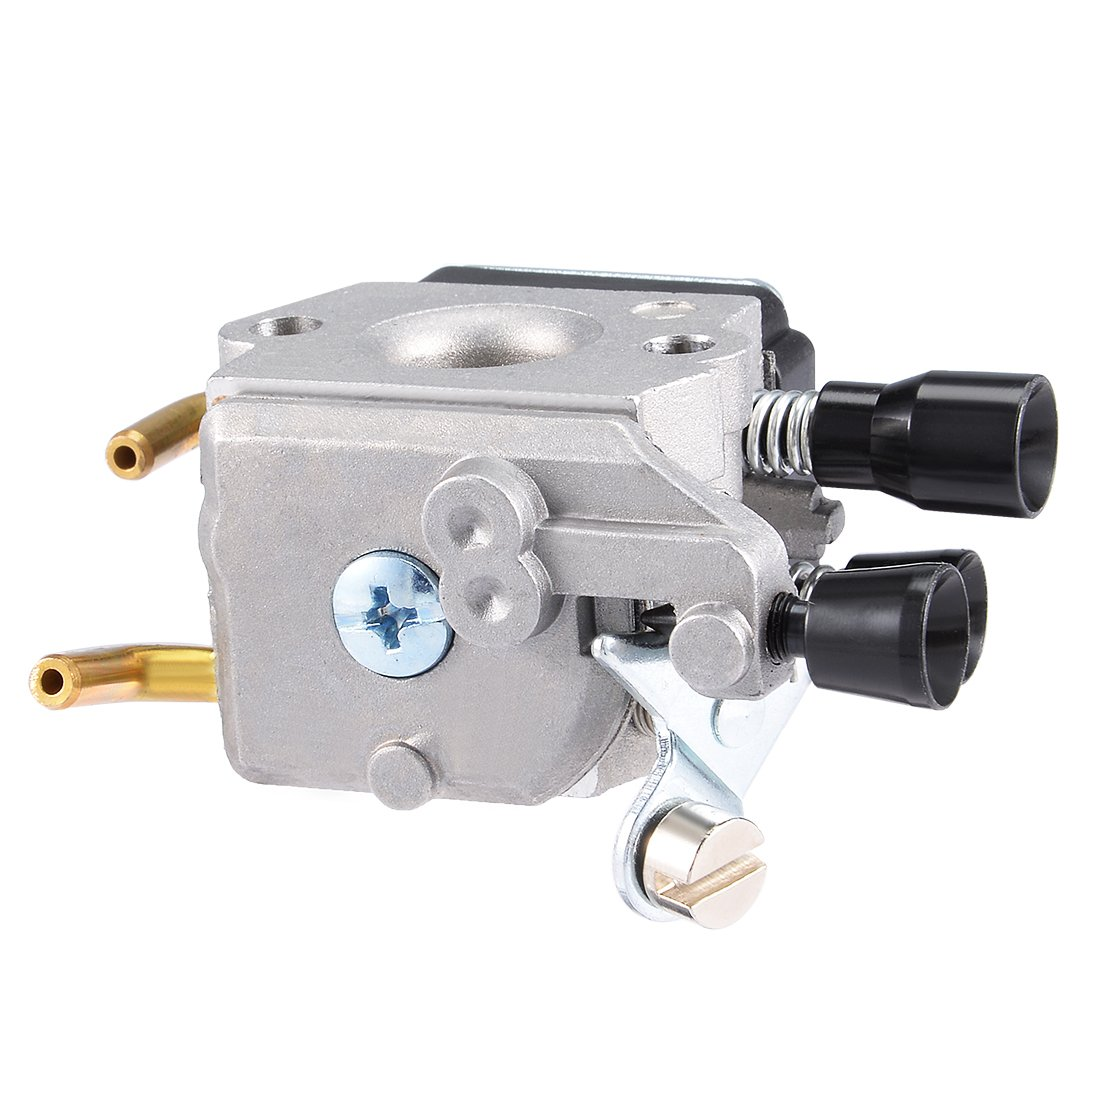 uxcell/® New Replace ZAMA Carburetor For STIHL C1Q-S71 C1Q-S97 C1Q-S143 FS38 FS45 FS45C FS46 FS55 FS55RC KM55 HL45